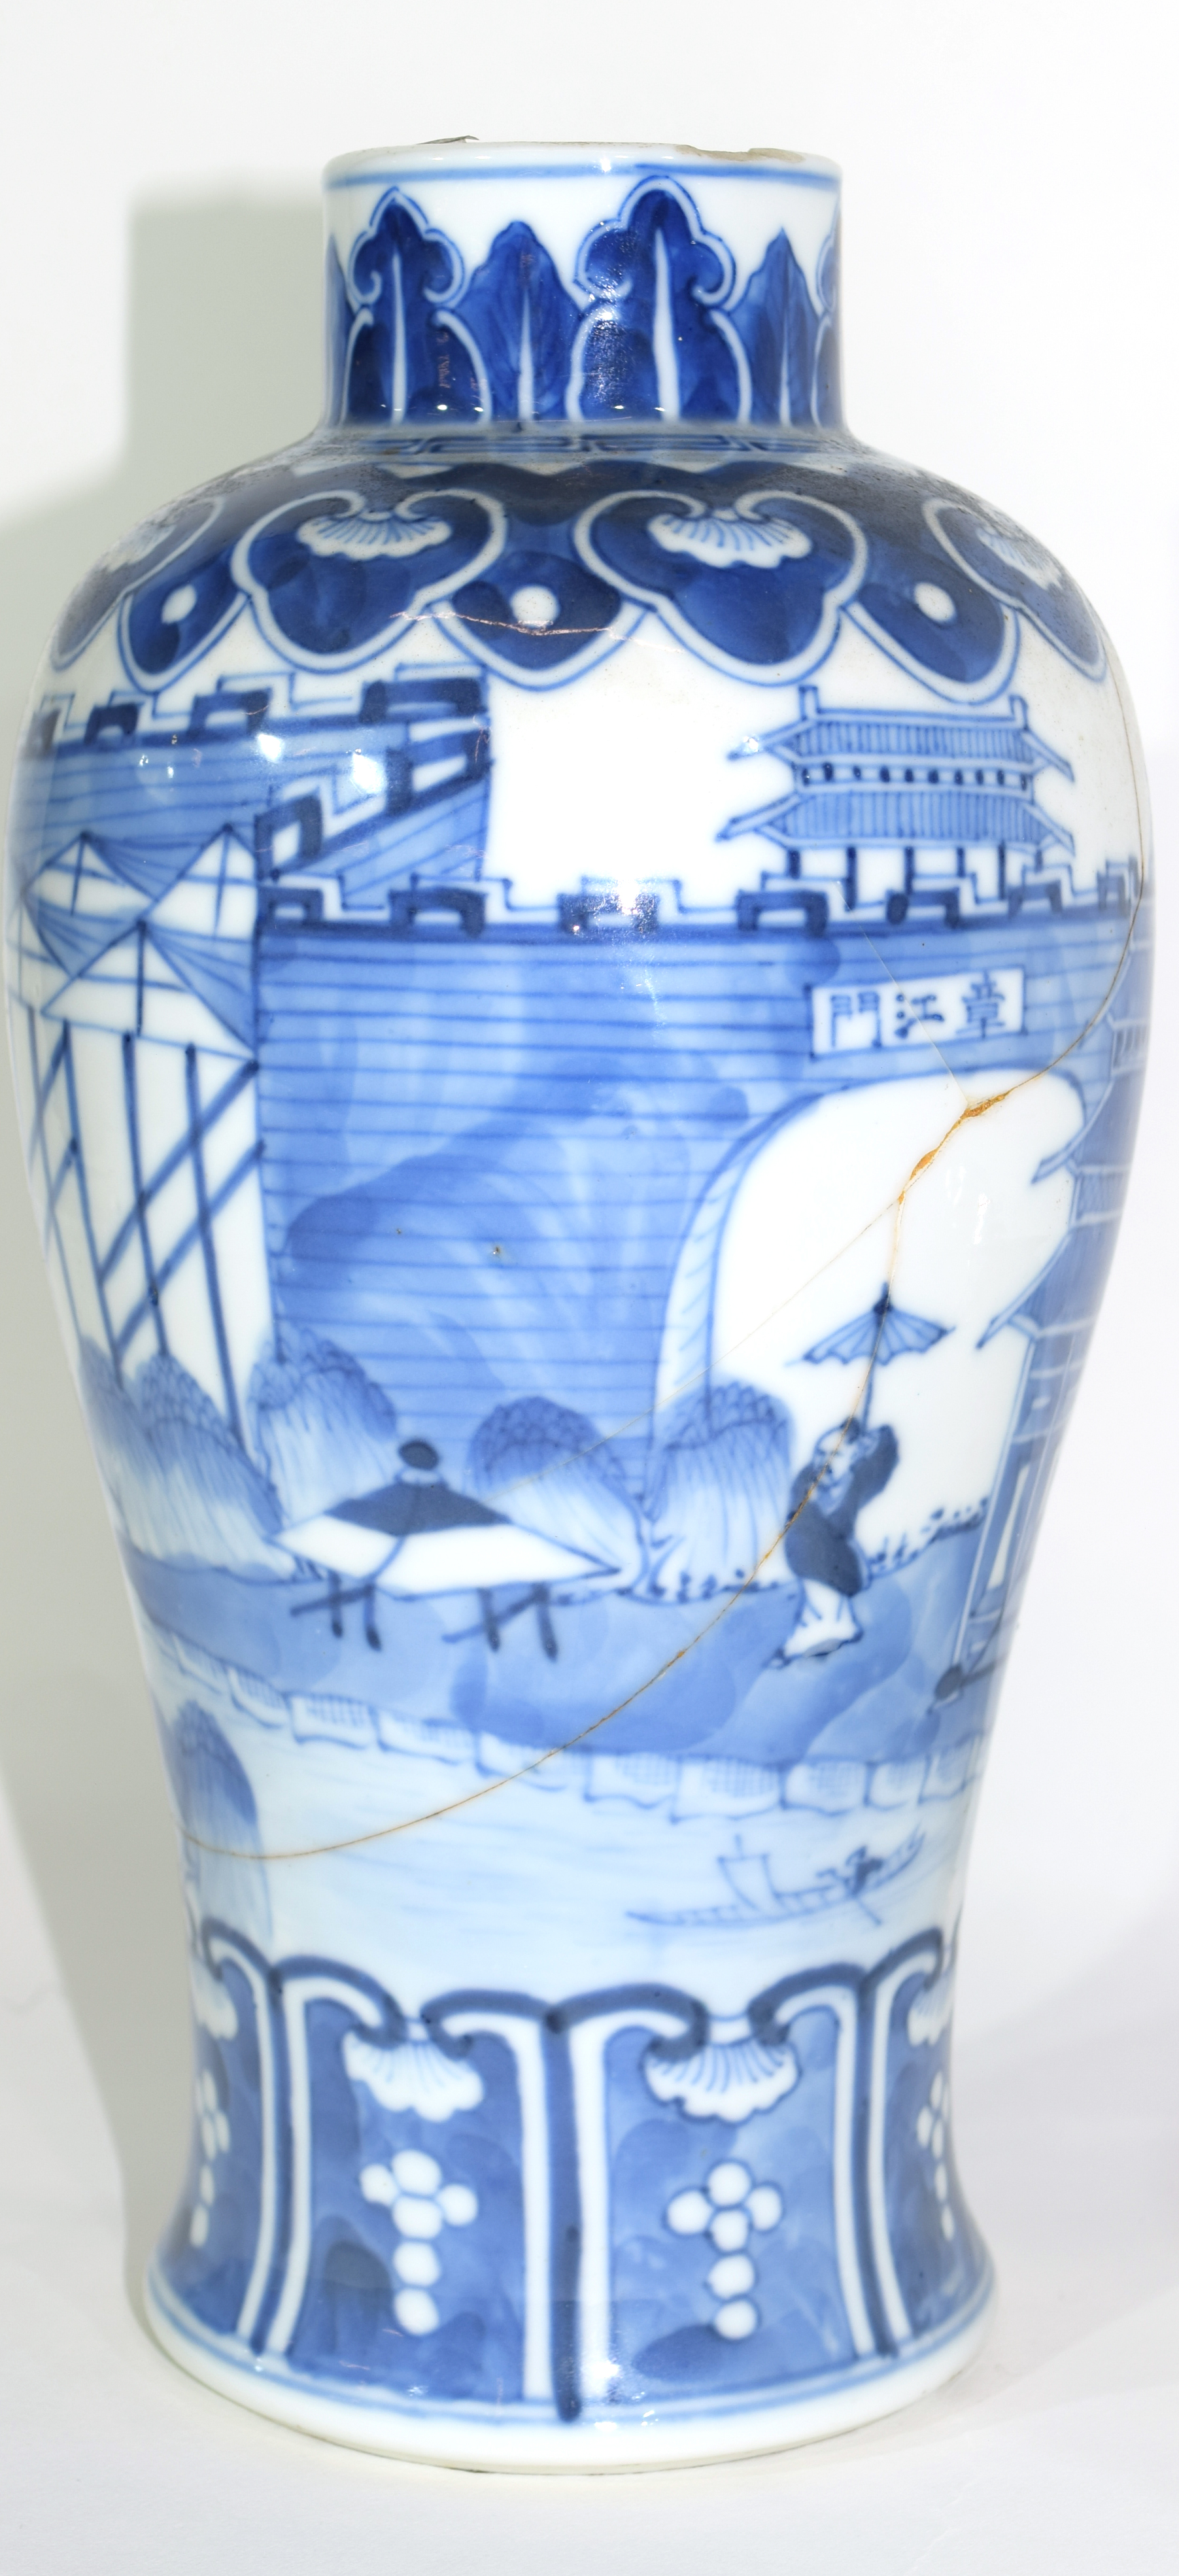 19th century Chinese porcelain bowl - Image 6 of 17